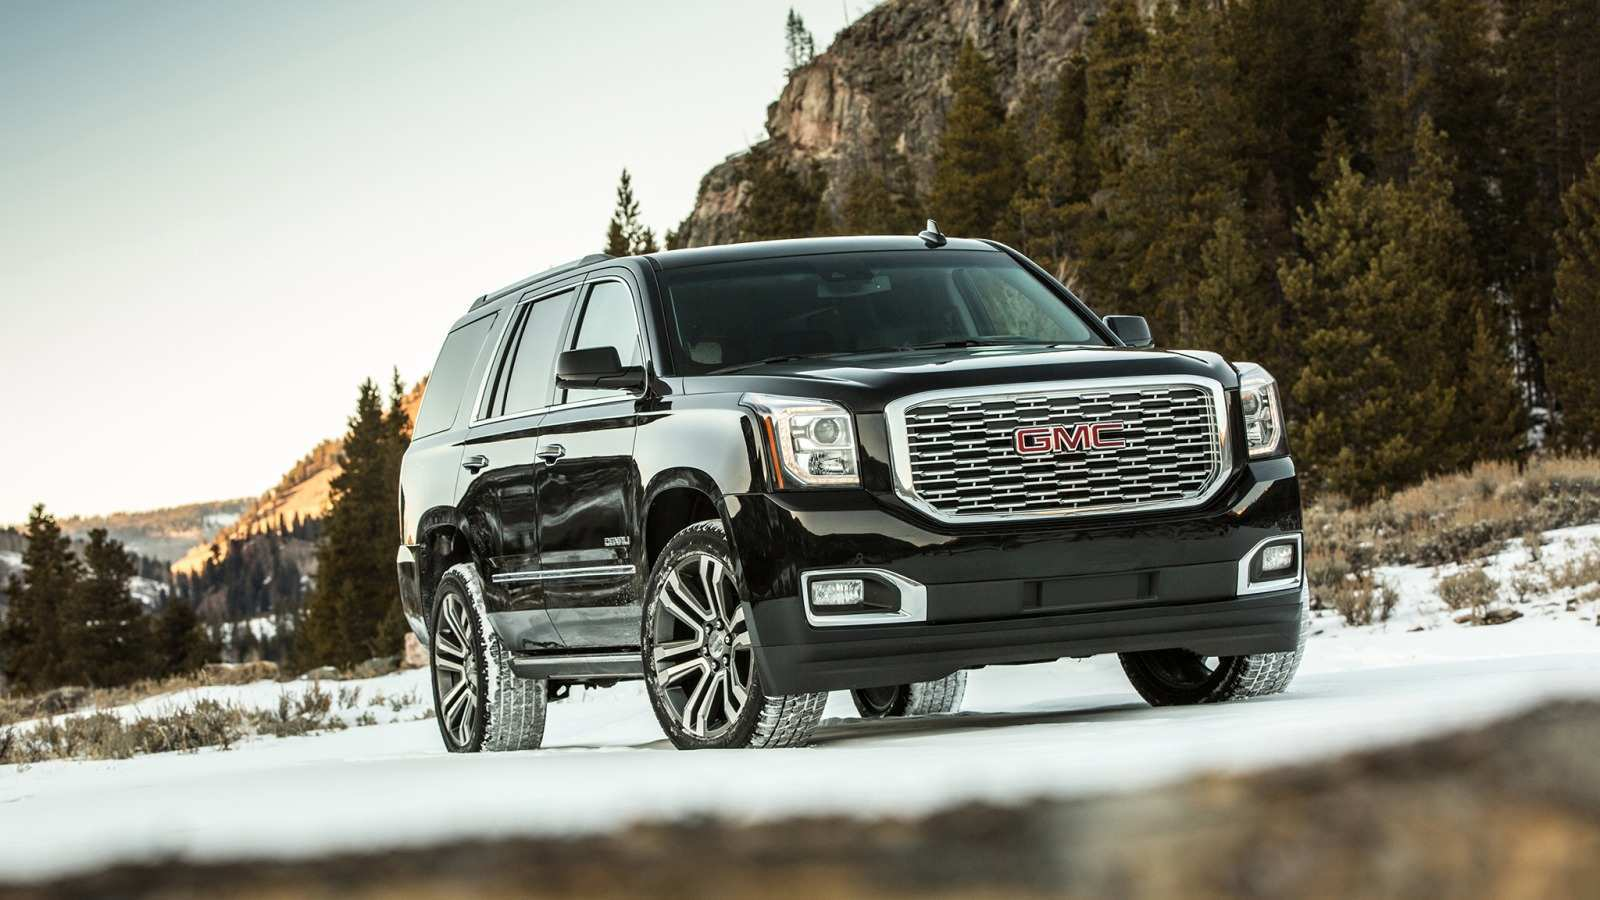 26 Gallery of Best Gmc Denali 2019 Interior Exterior And Review Ratings with Best Gmc Denali 2019 Interior Exterior And Review